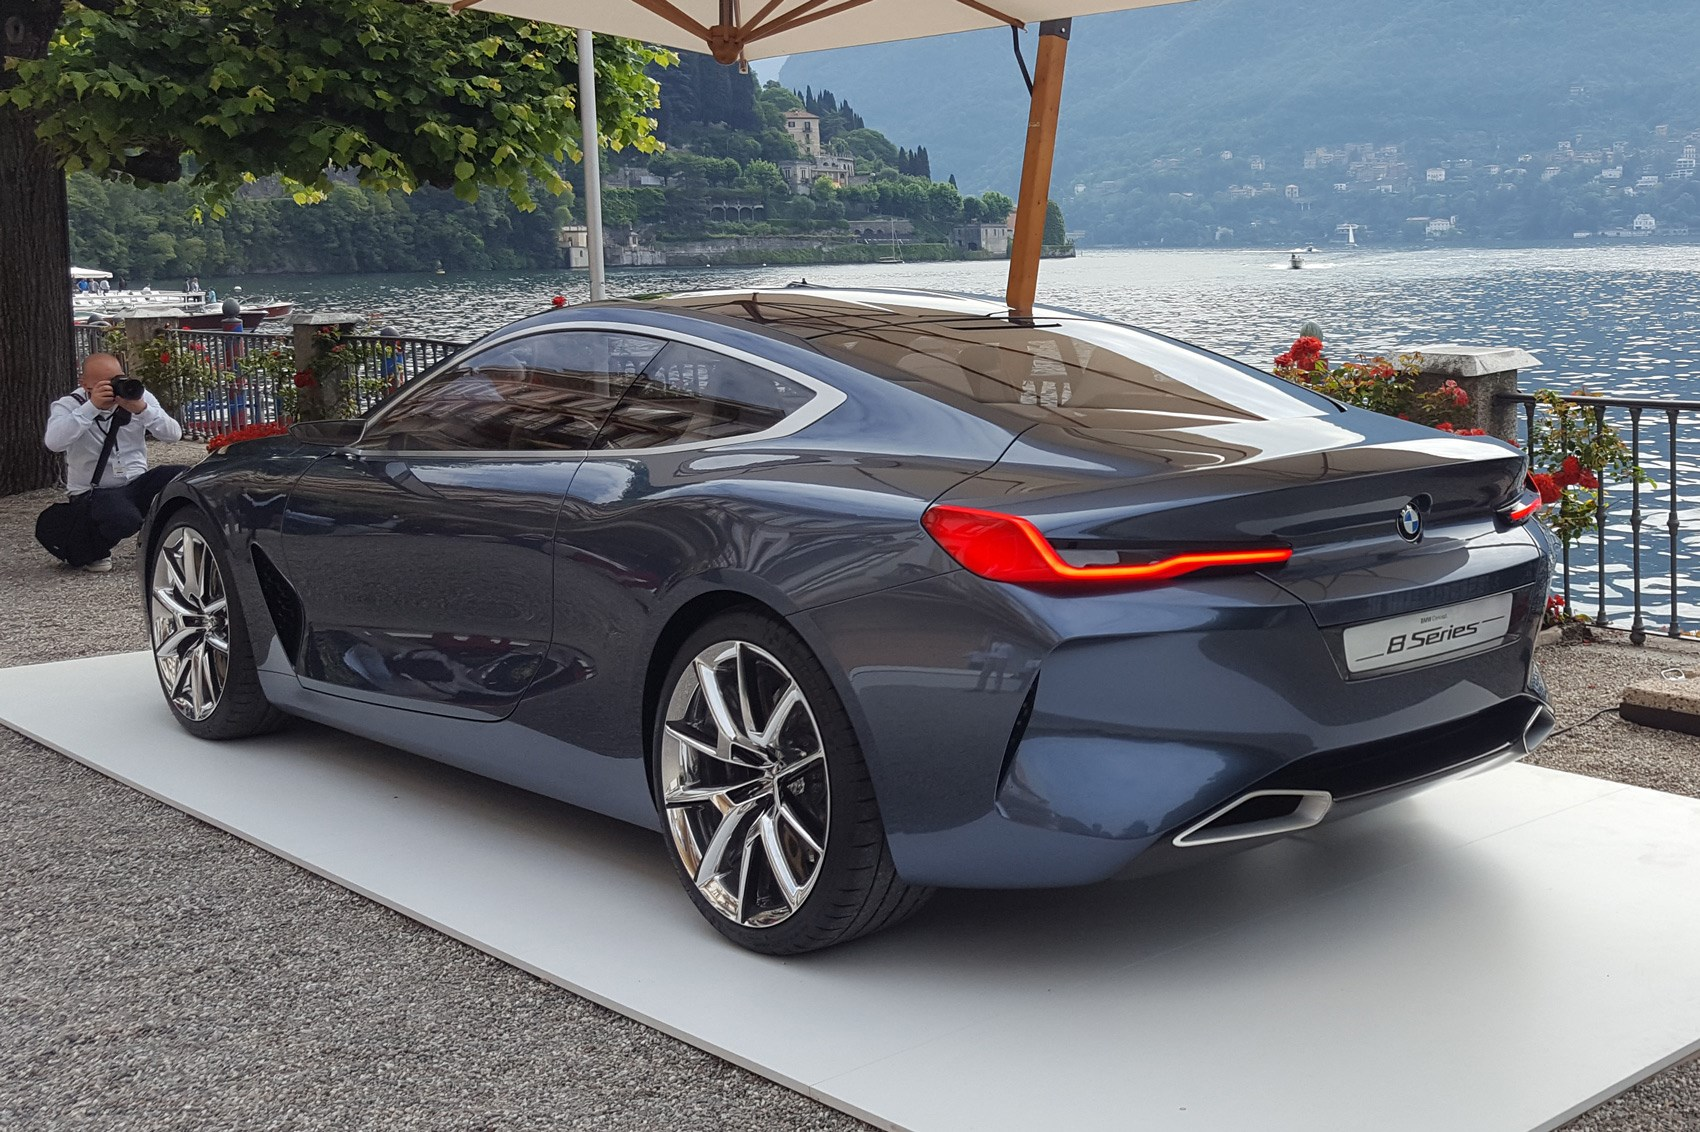 It's Back! BMW Concept 8-series Previews New Plush Coupe